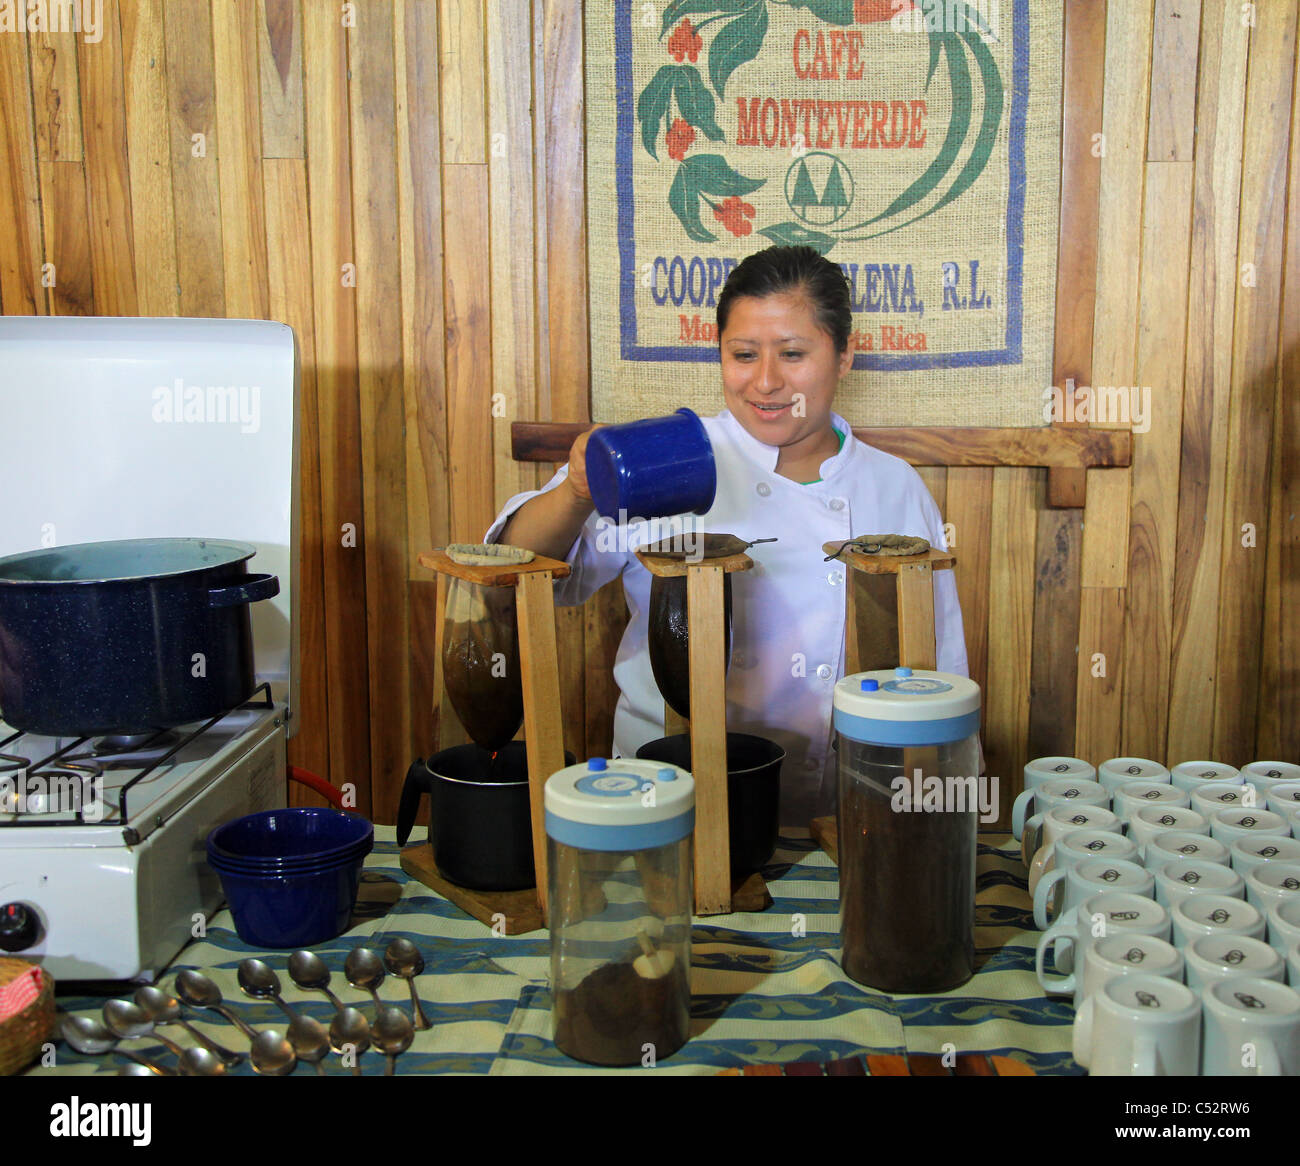 A woman brewing coffee of different strengths, Monteverde, Costa Rica - Stock Image